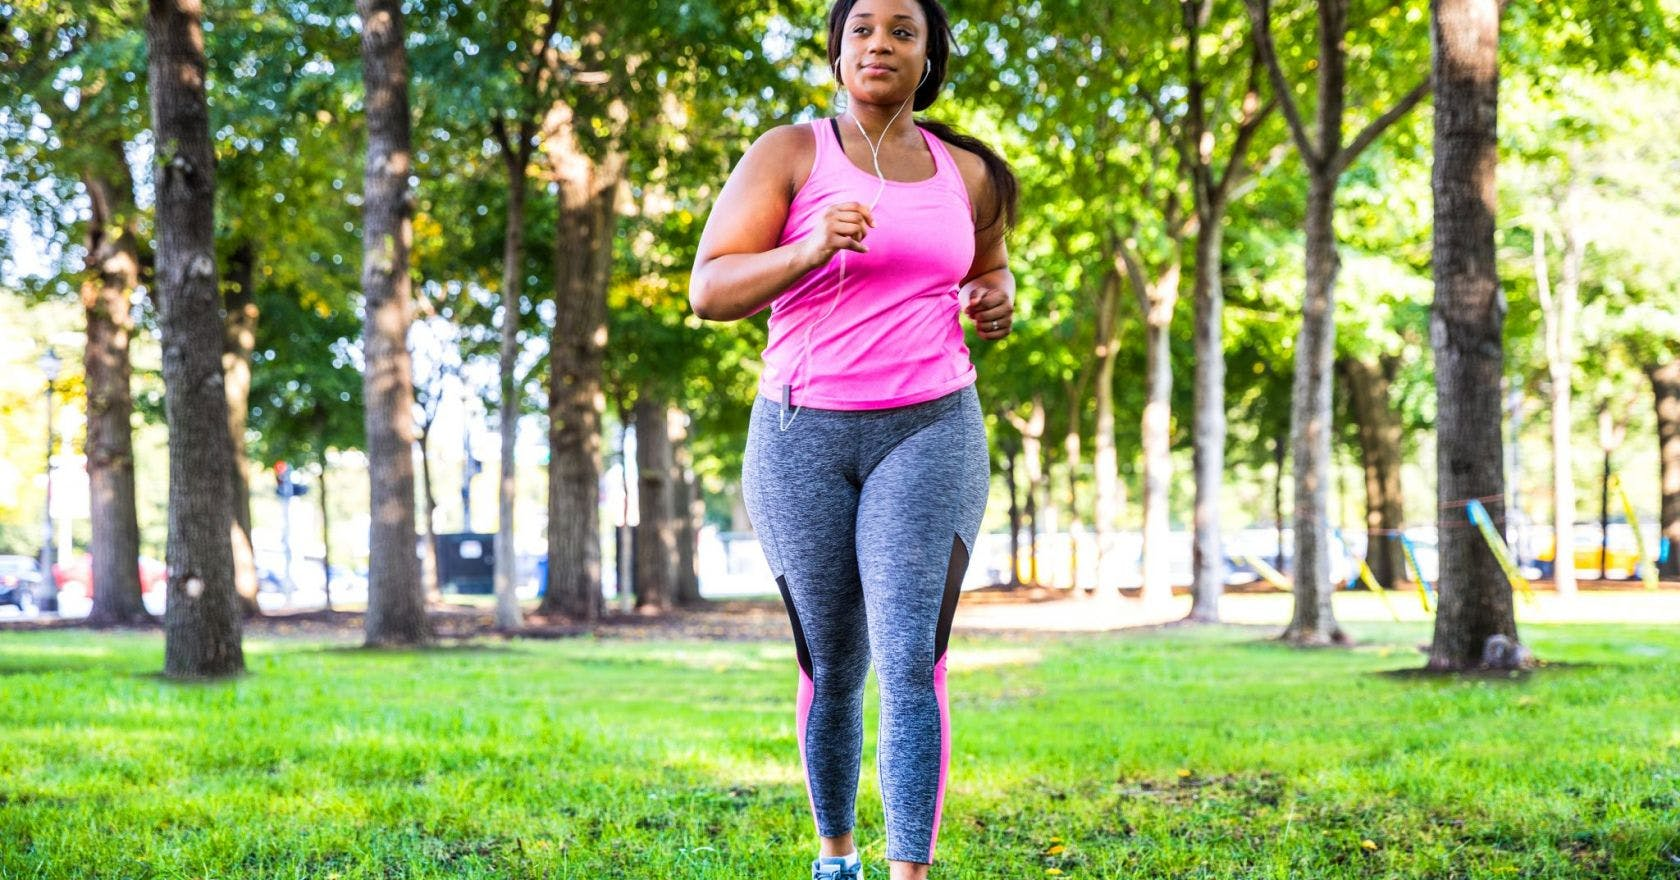 No, you don't need to run every day to keep fit